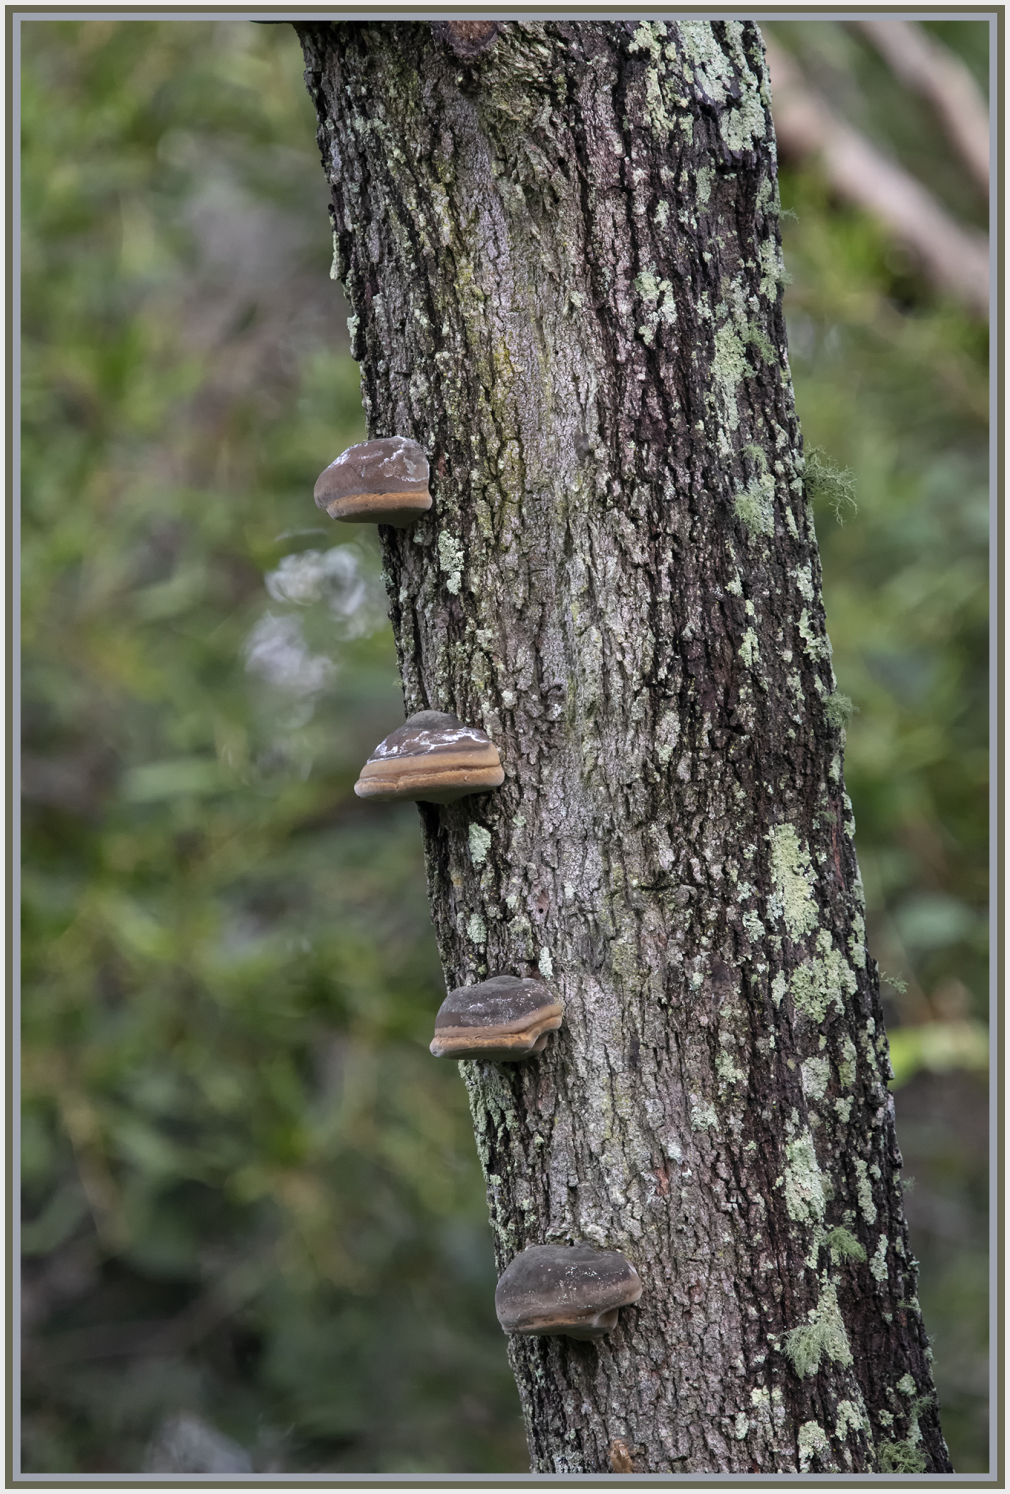 Tree-Dwelling Lichens, fungi and hanging moss